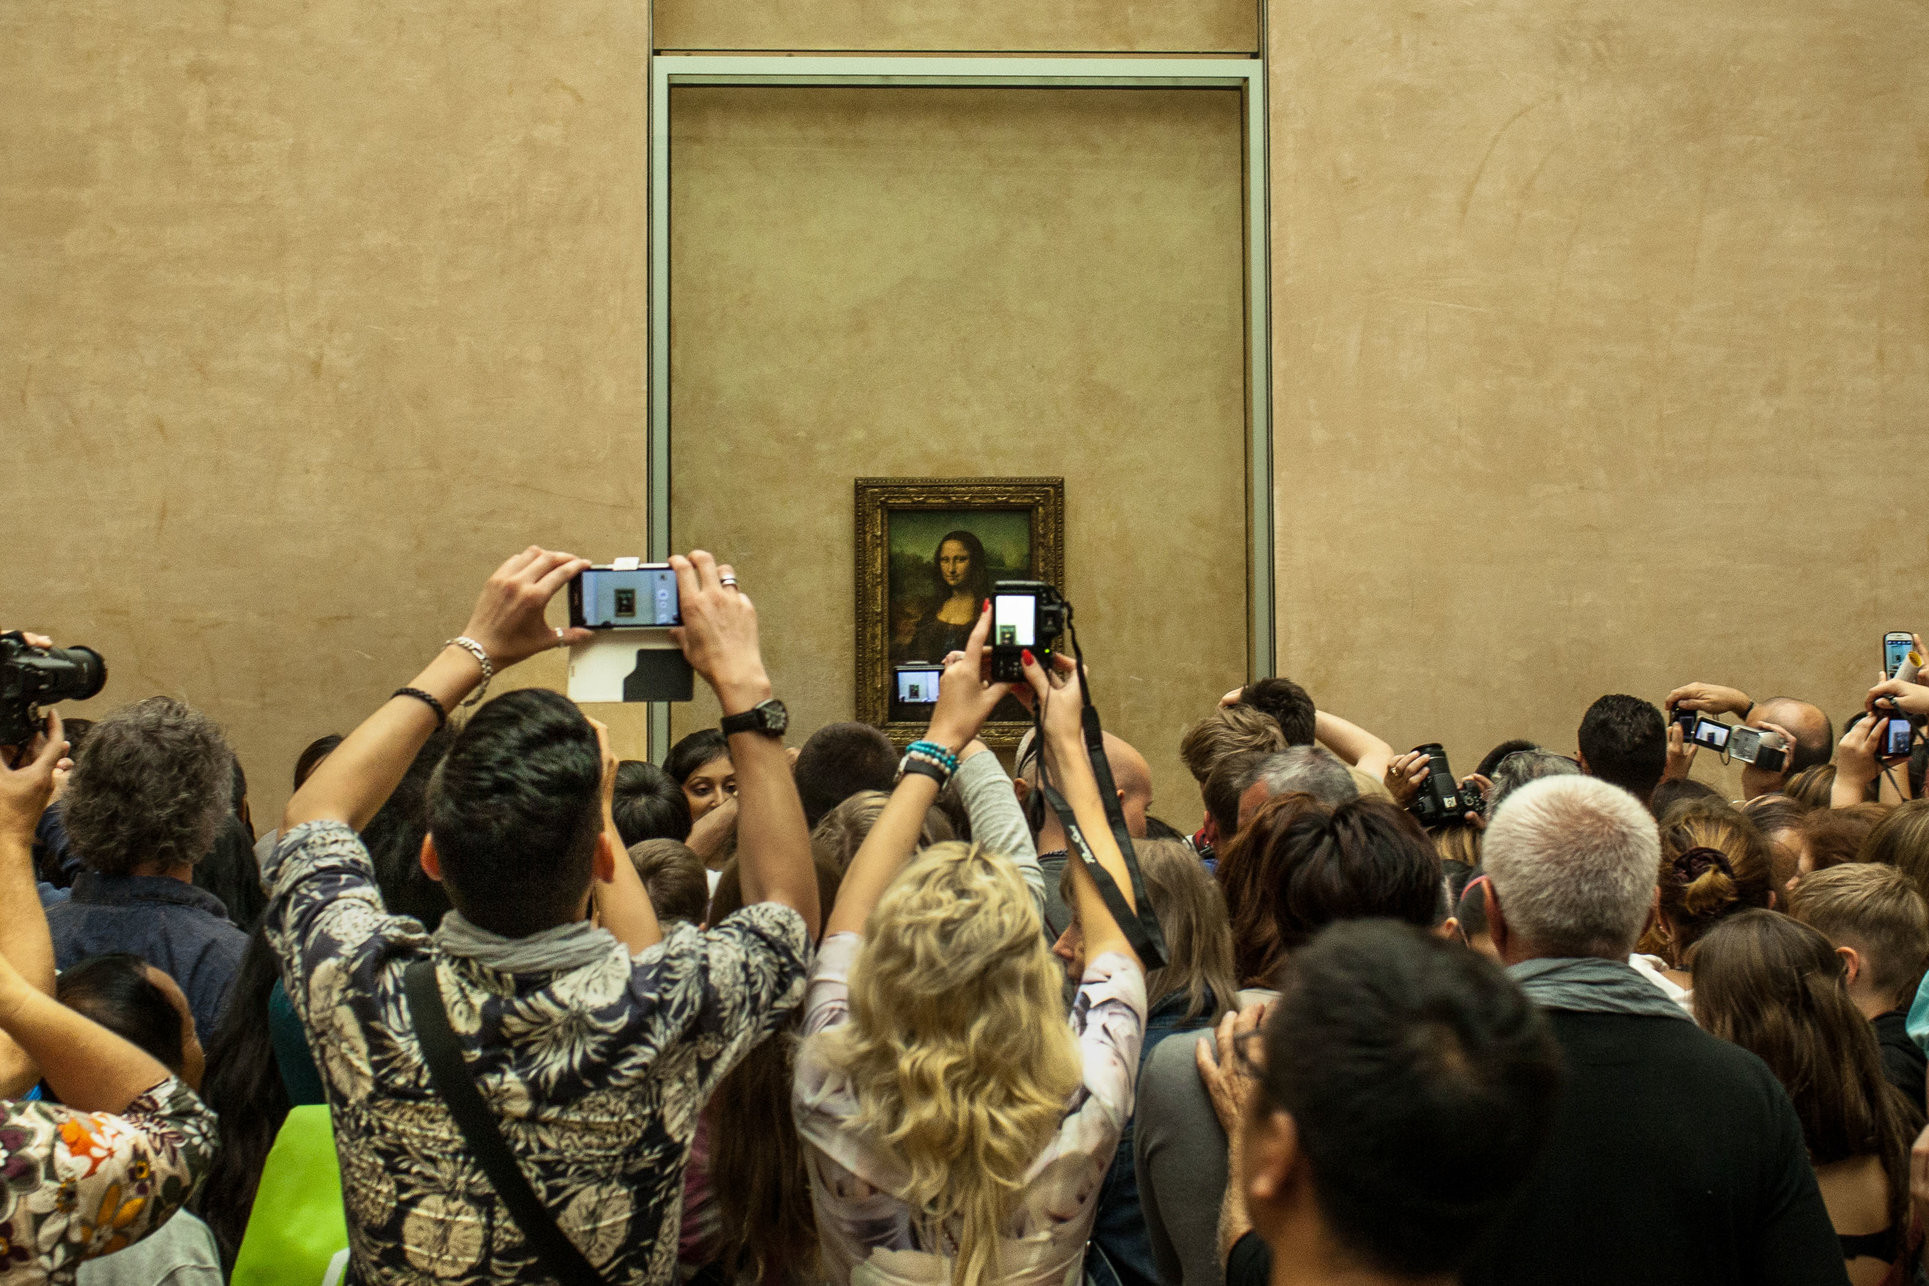 Crowds around Da Vinci's Mona Lisa at the Louvre, Paris. Image © Guia Besana